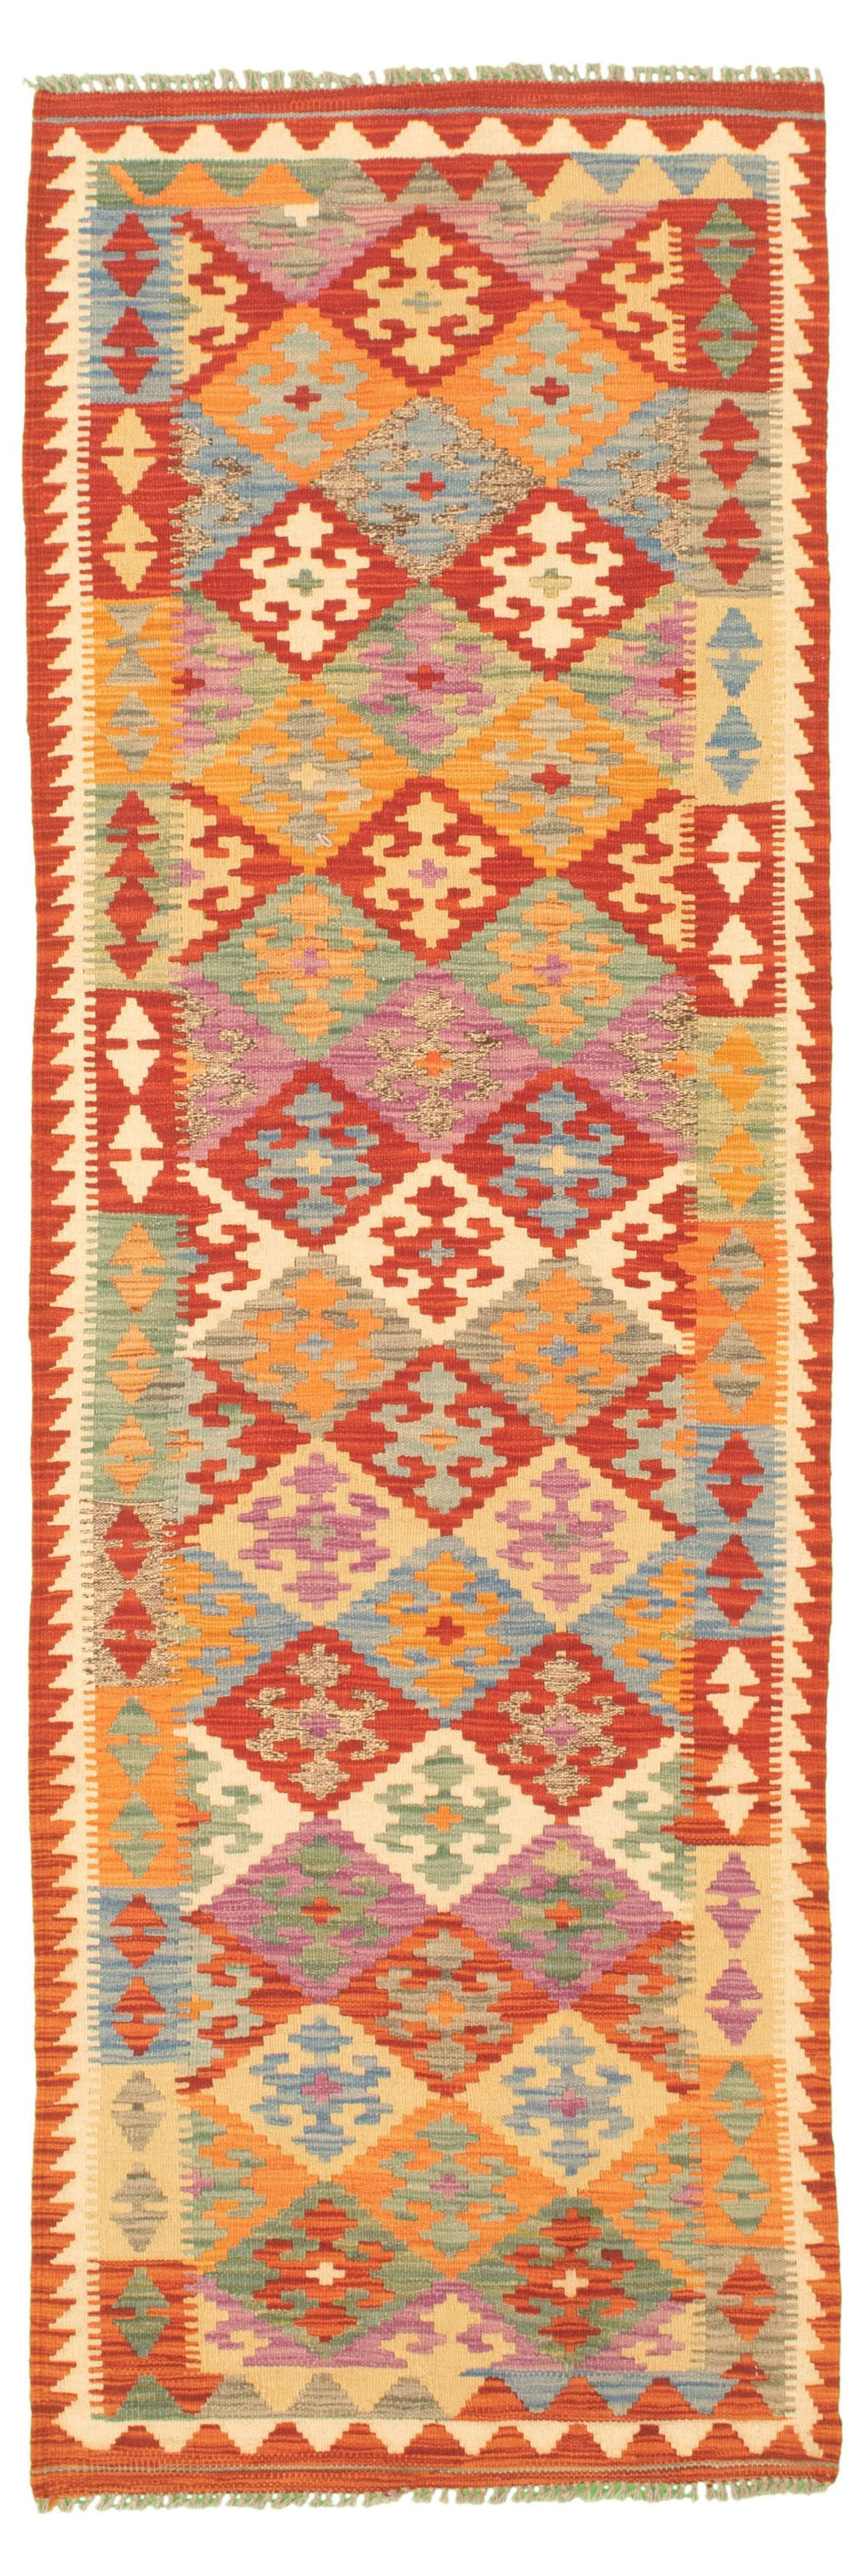 """Hand woven Bold and Colorful  Dark Copper Wool Kilim 2'7"""" x 8'4"""" Size: 2'7"""" x 8'4"""""""